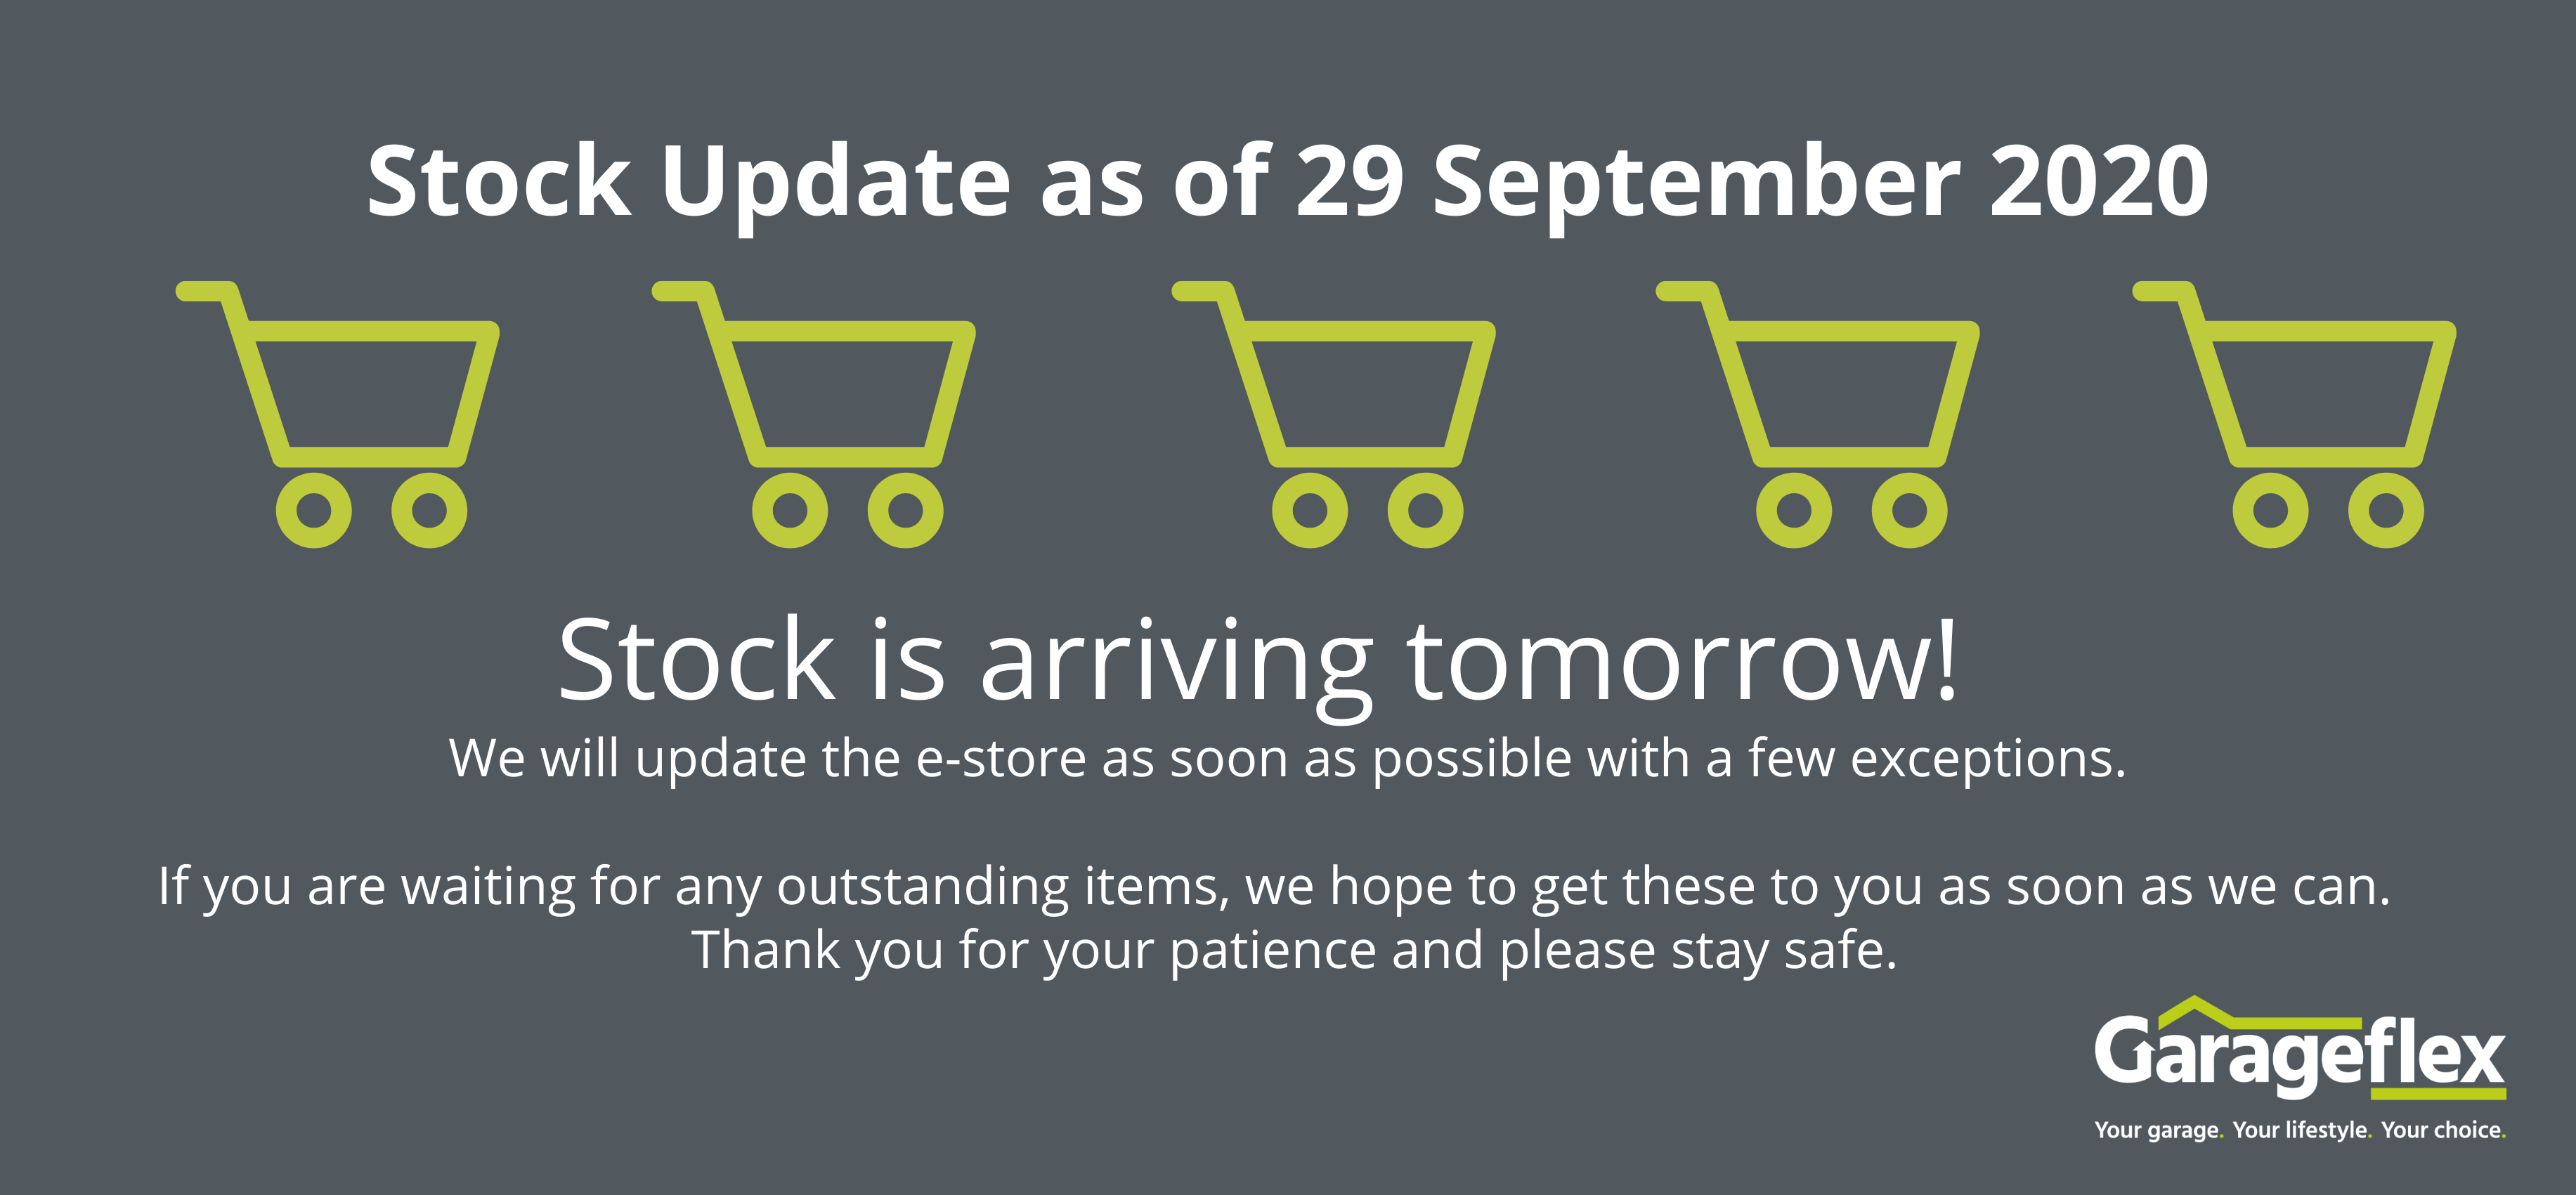 Estore stock update 29 September 2020